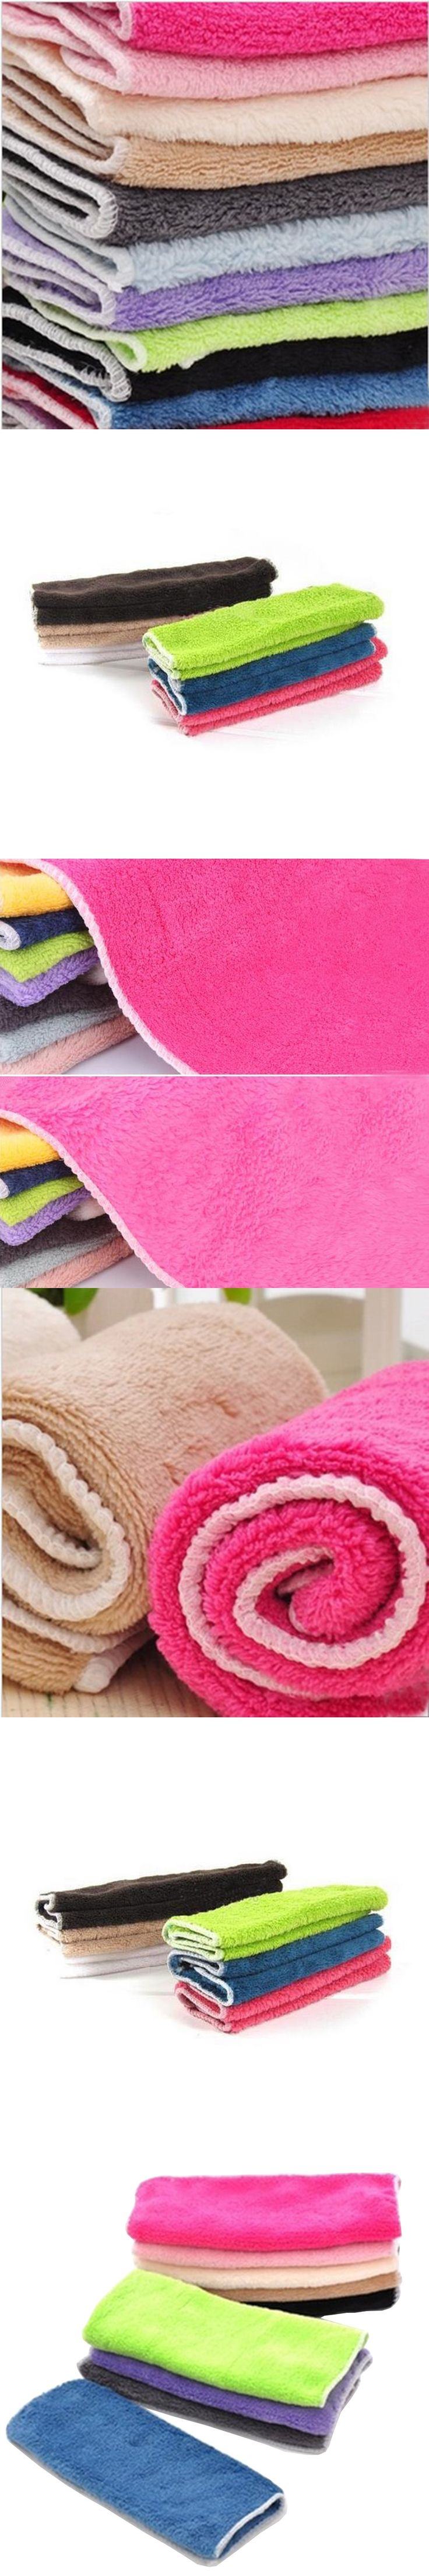 ISHOWTIENDA New Arrival Anti-grease Cloth Bamboo Fiber Washing Towel Magic Kitchen Cleaning Wiping Rags